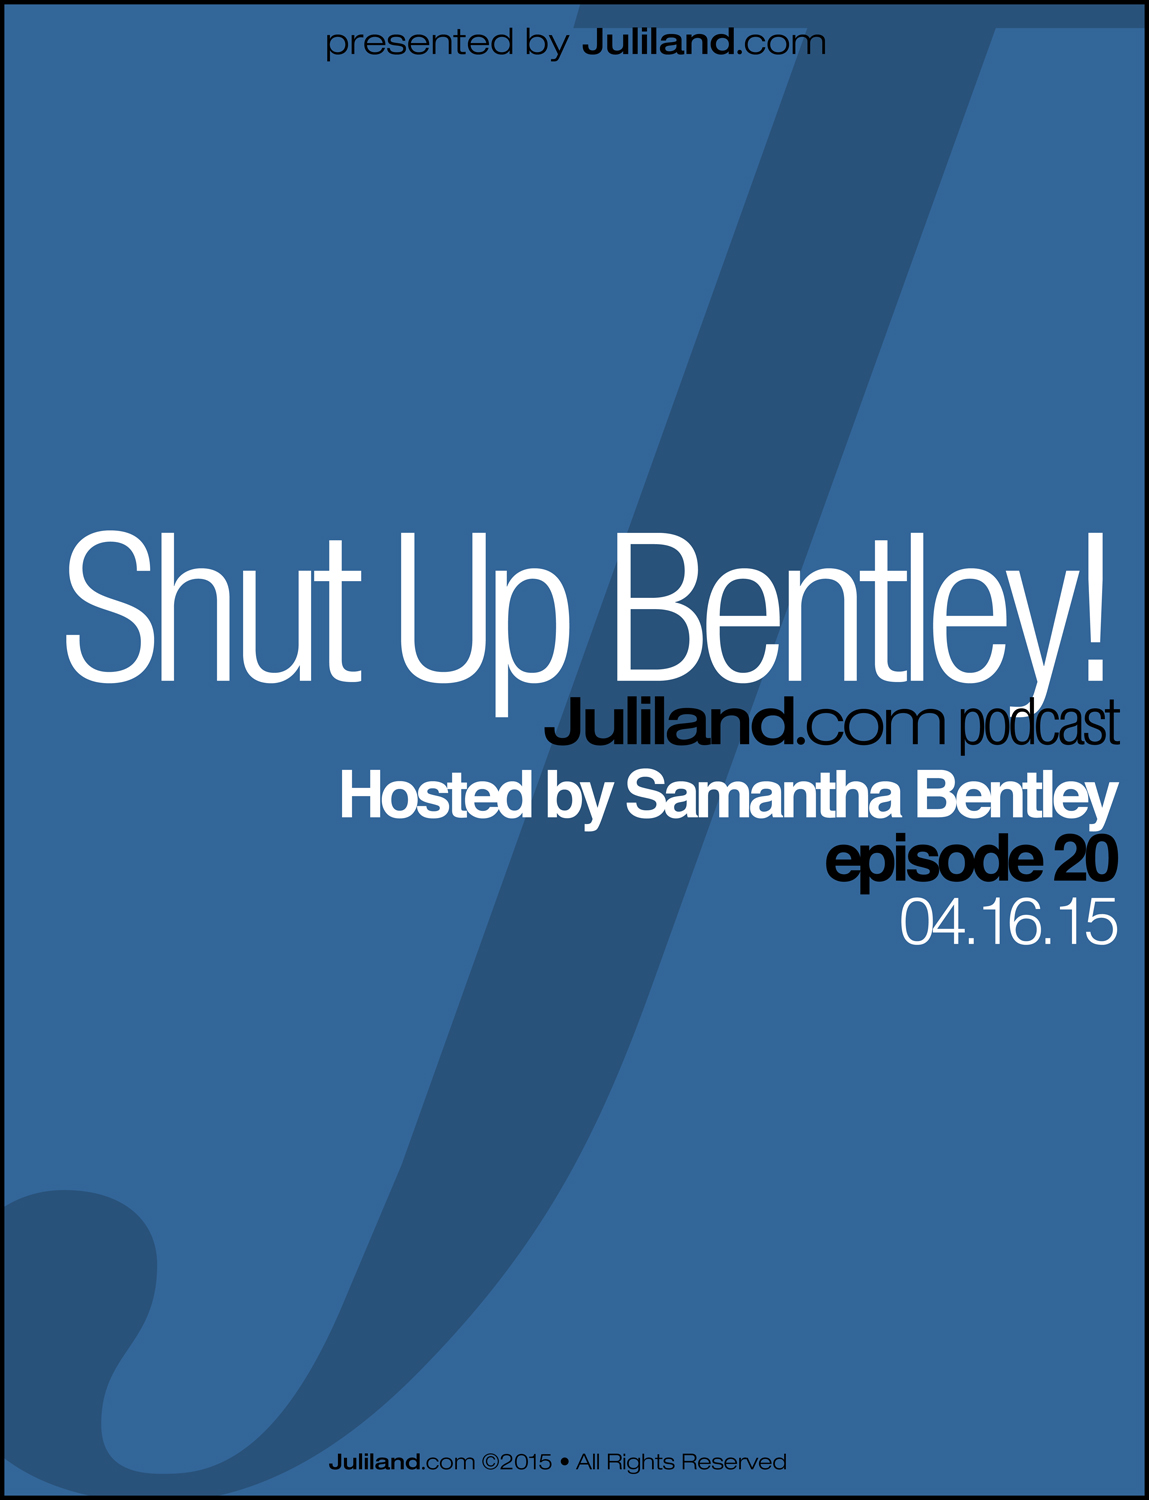 Shut Up Bentley!_e20